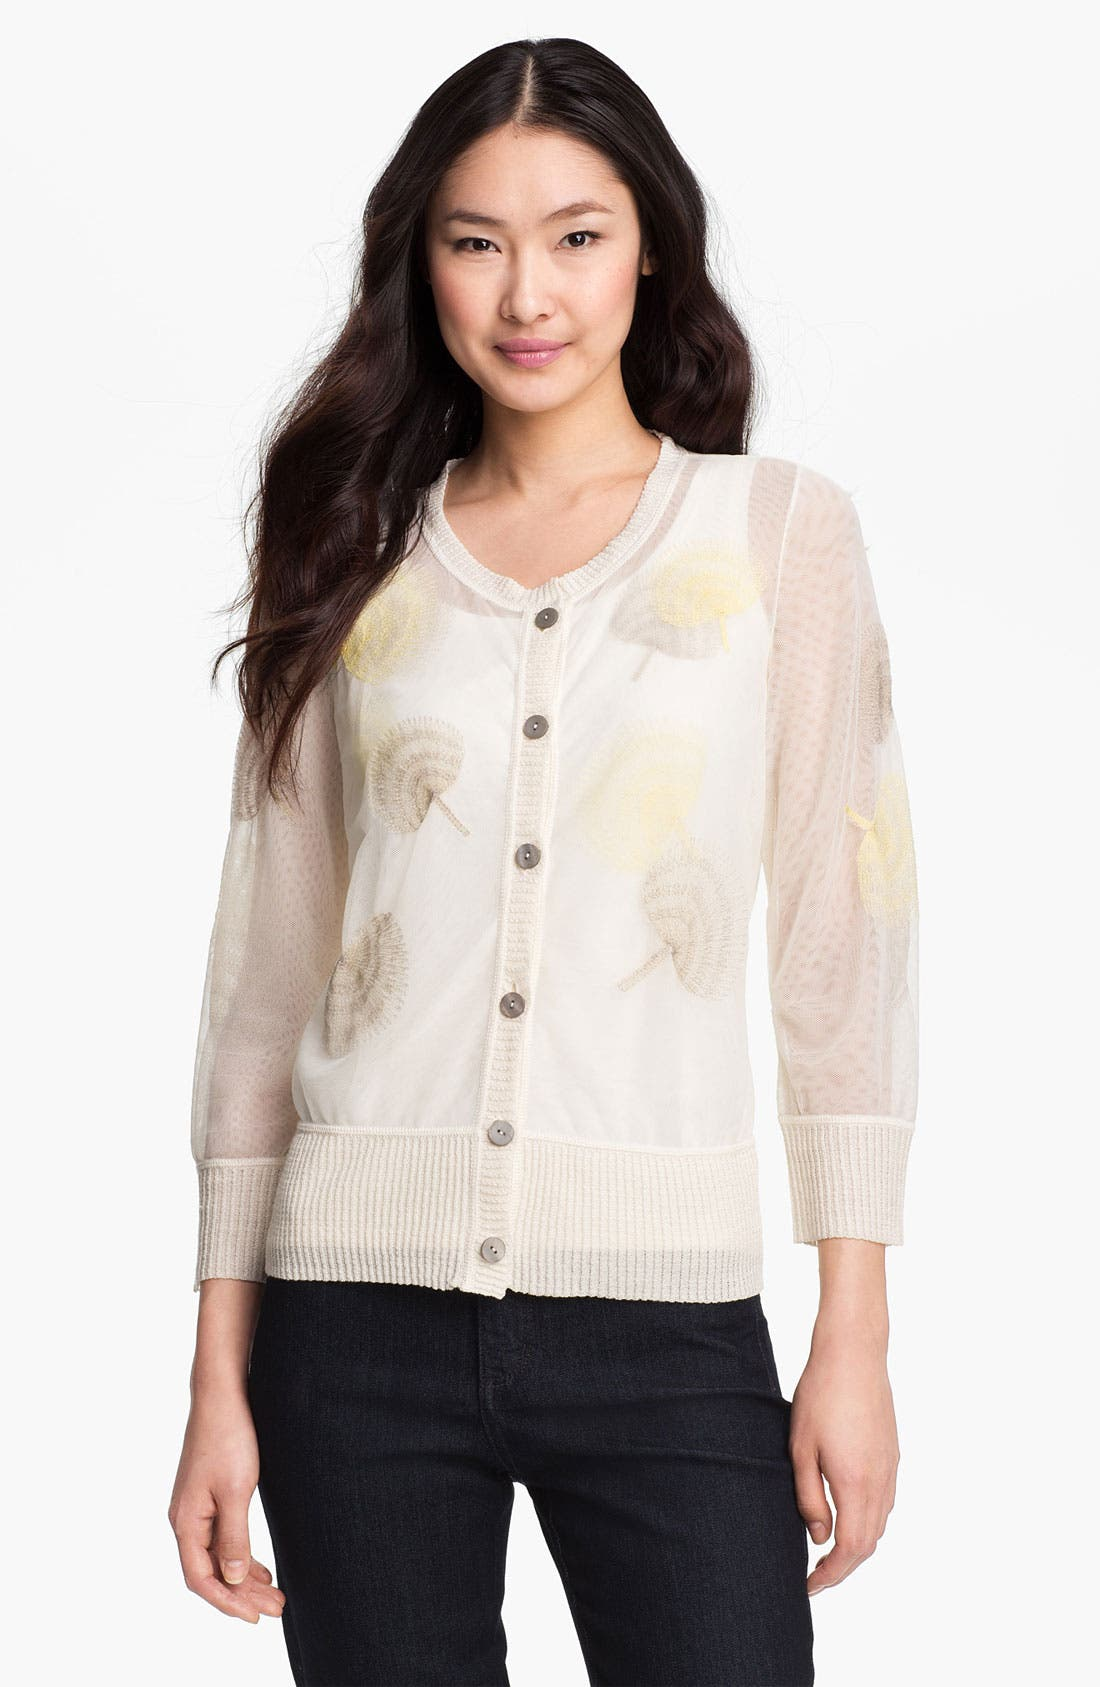 Main Image - Nic + Zoe Fan Print Sheer Mesh Cardigan